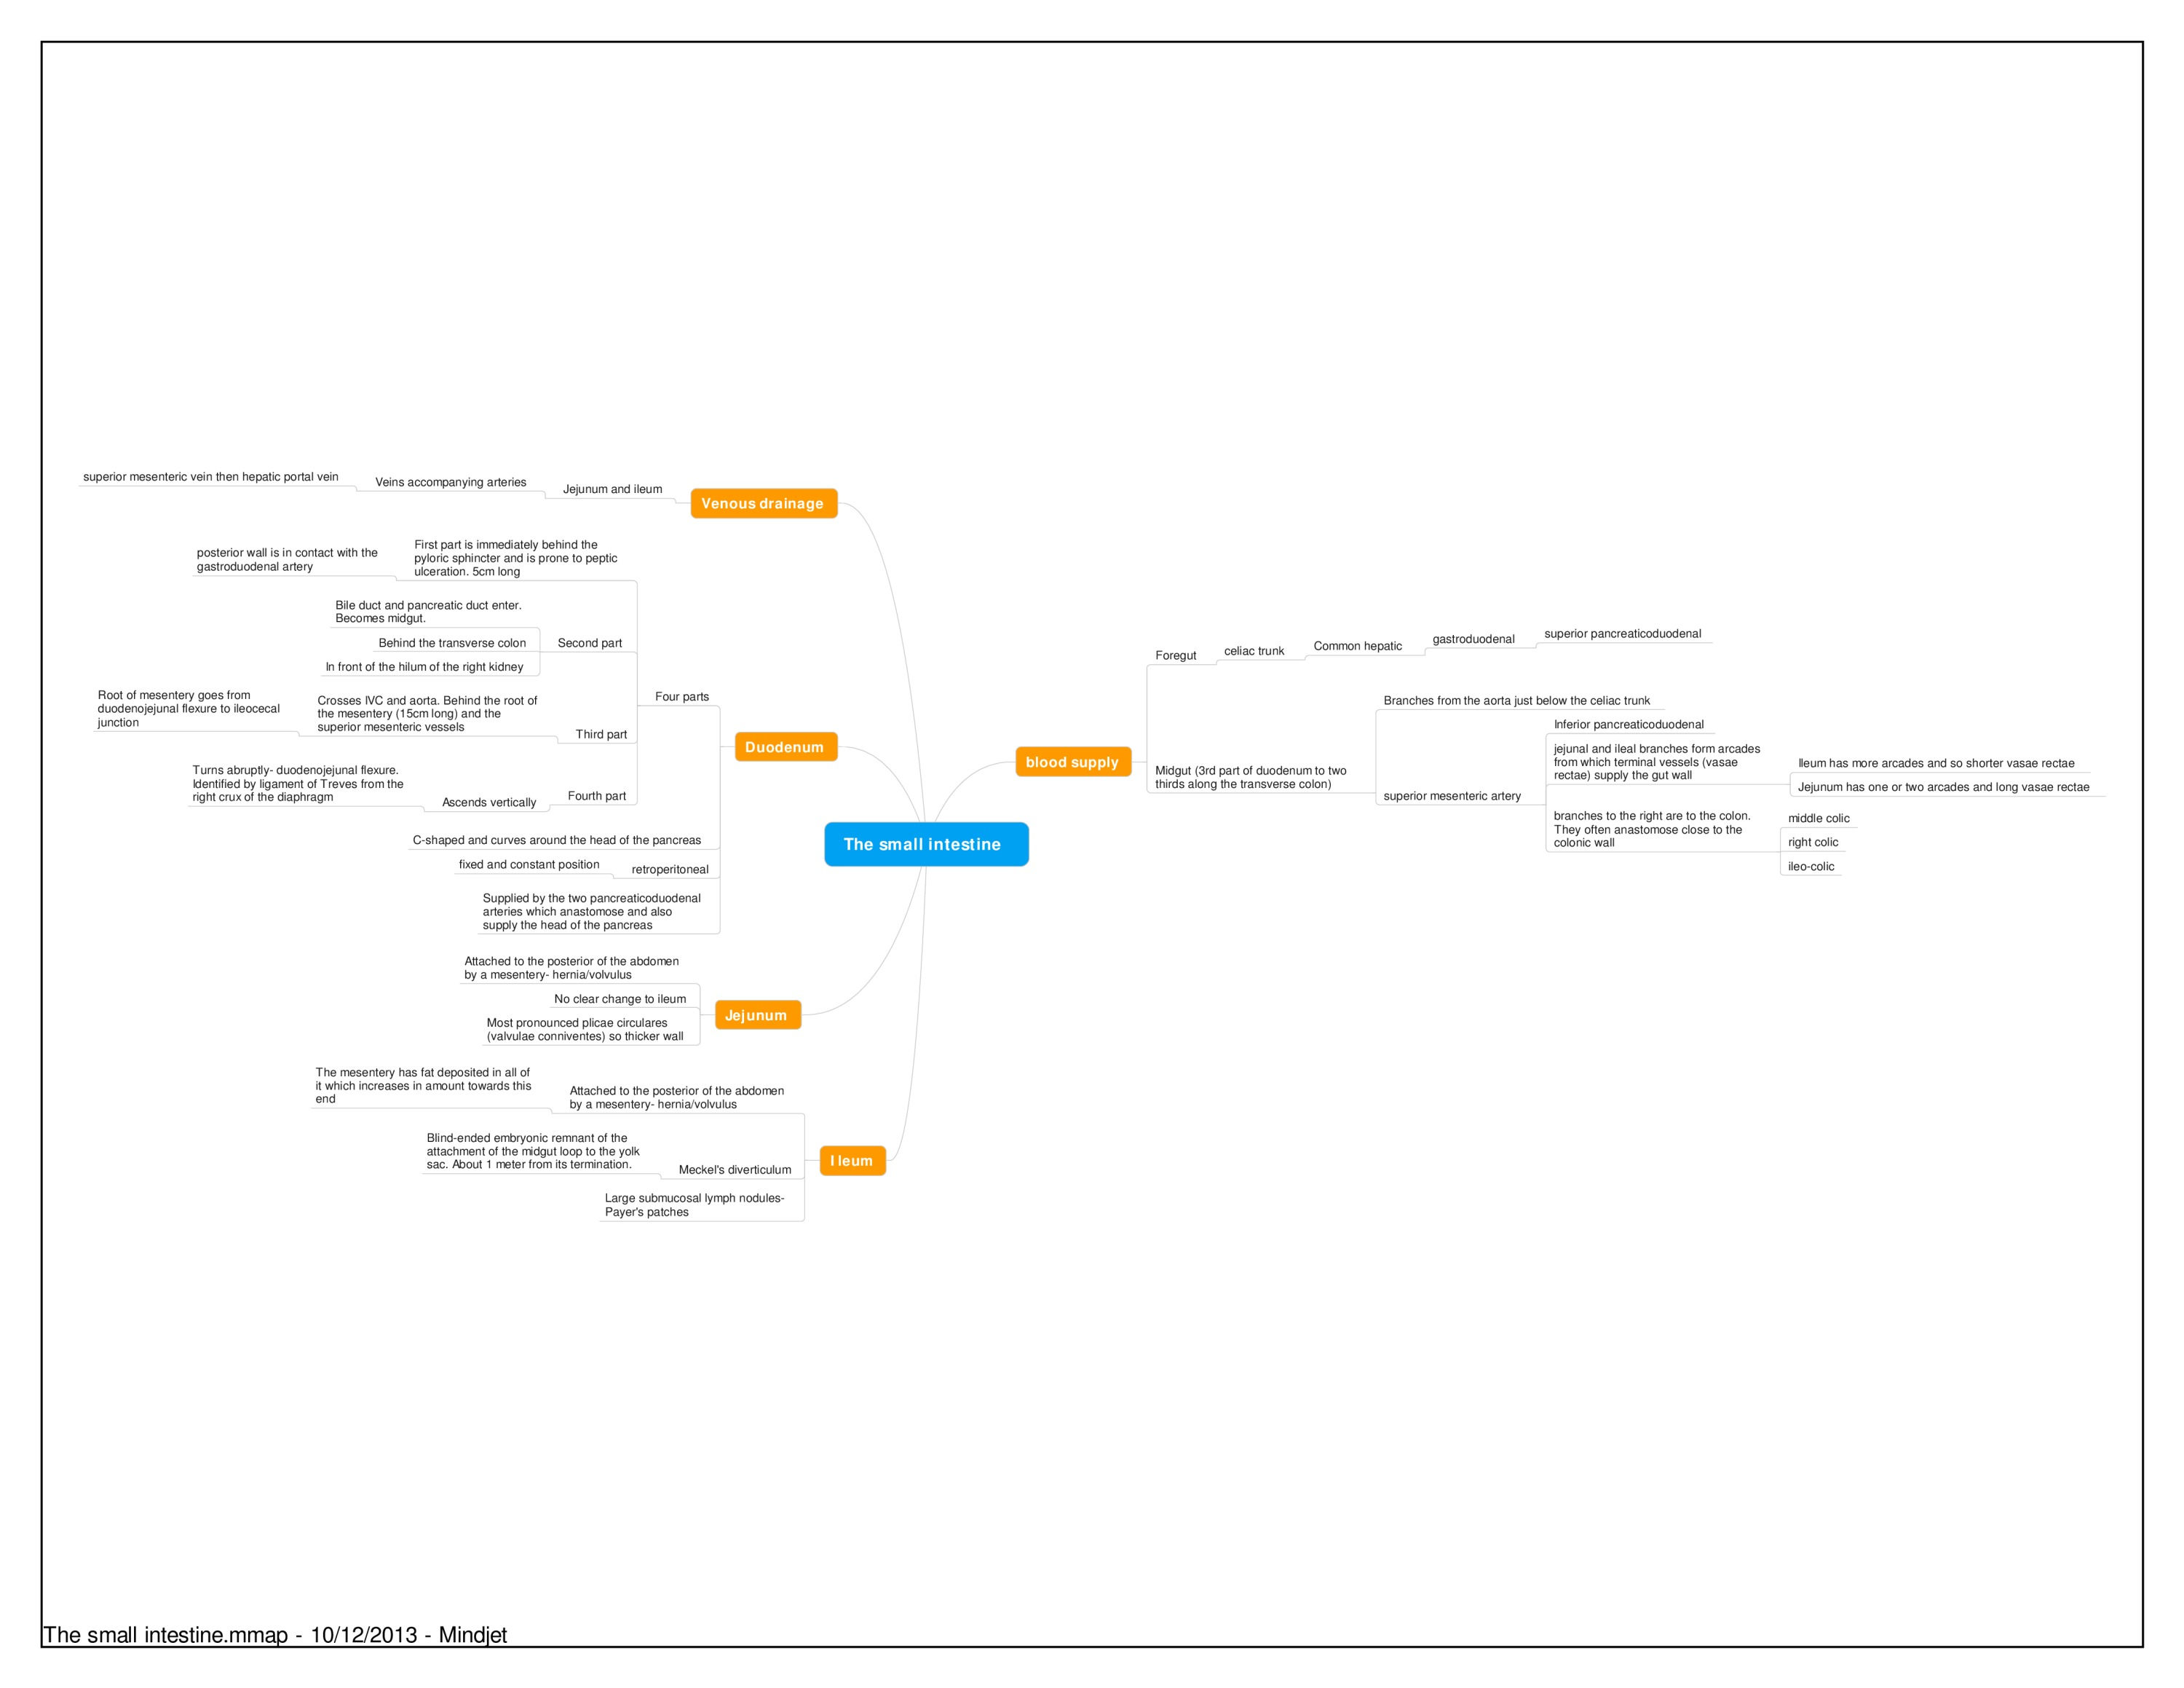 Mindmap- The small intestine